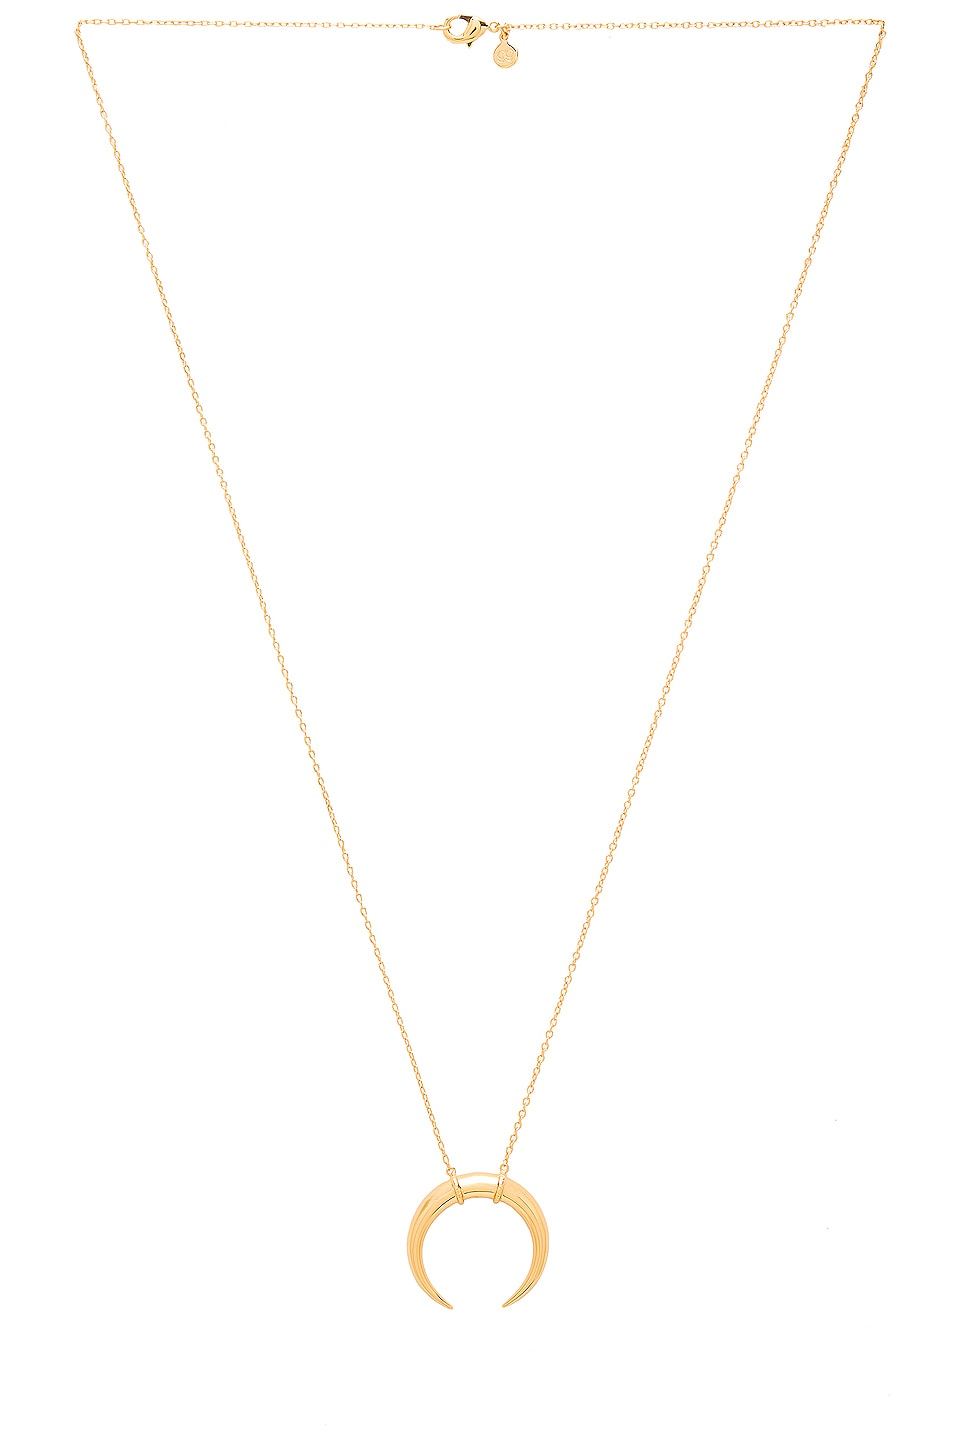 gorjana Cayne Crescent Pendant Necklace in Gold